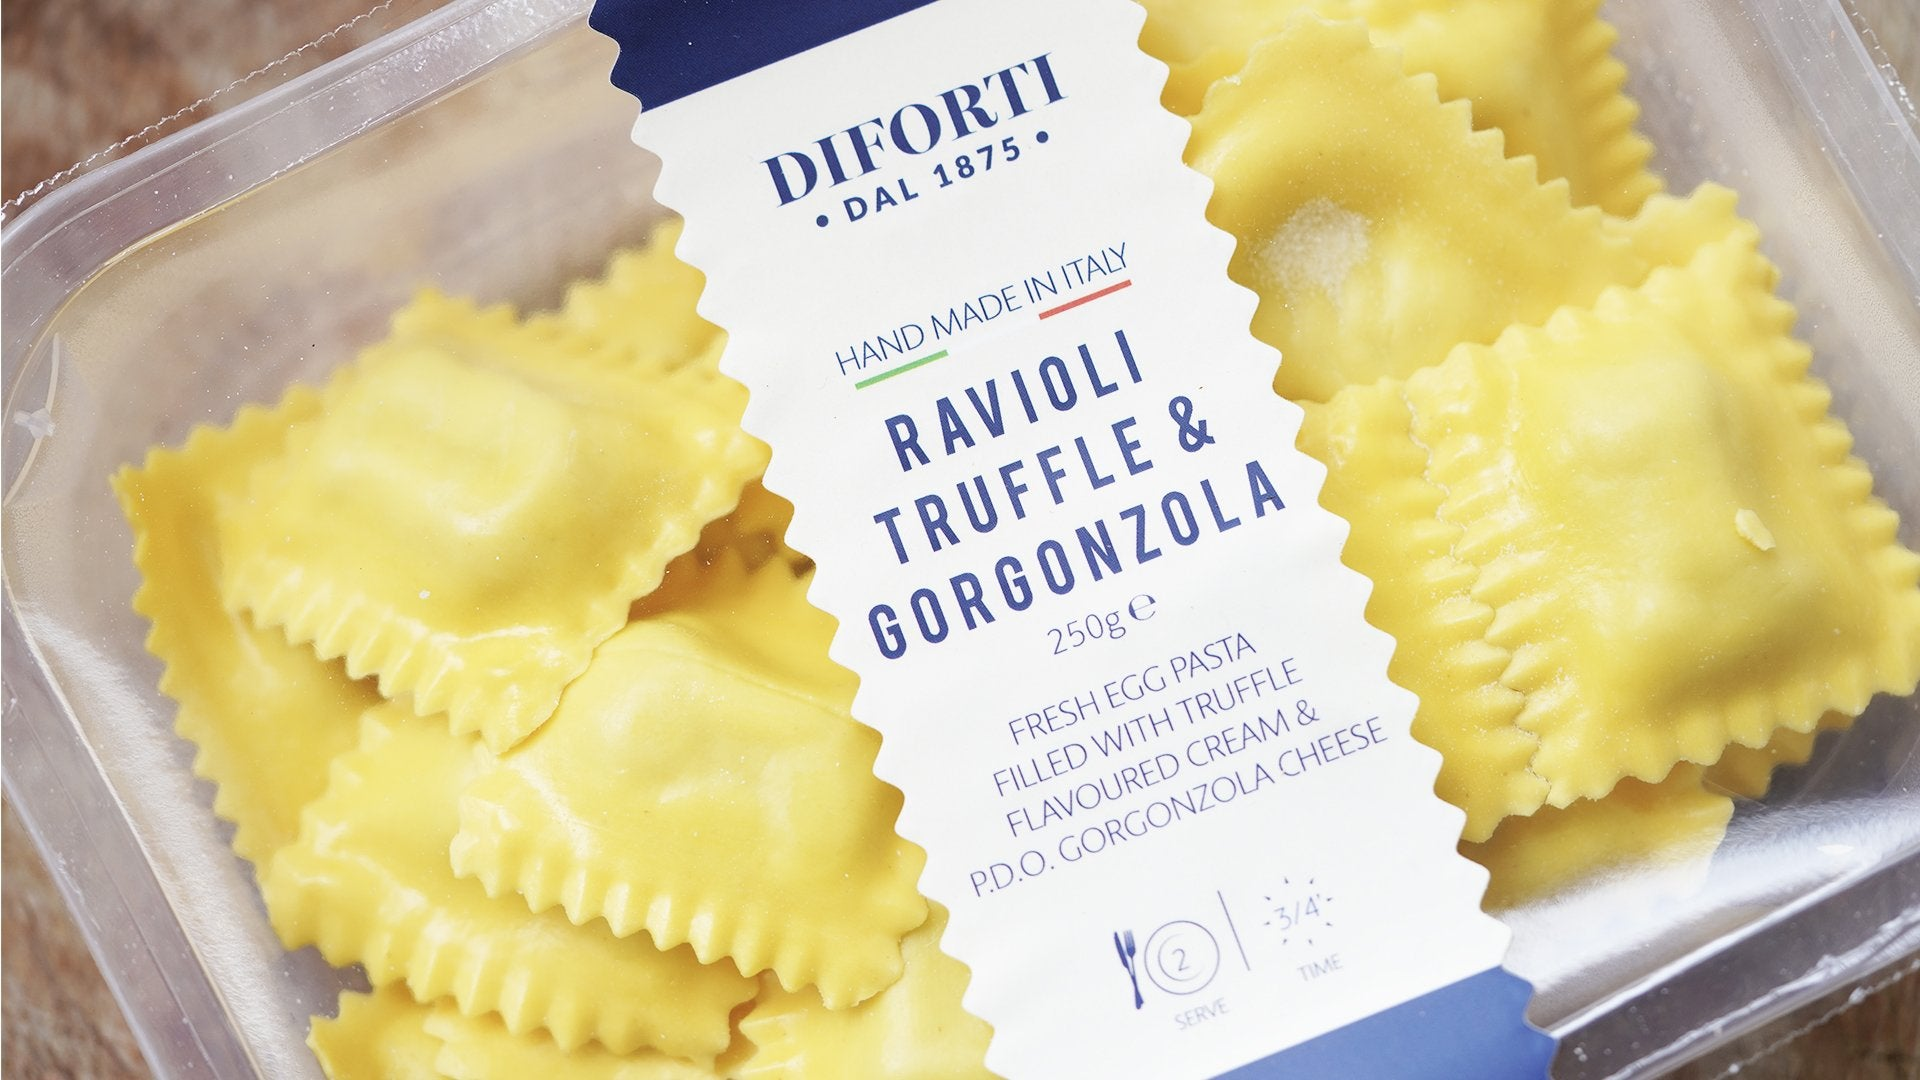 Diforti Truffle and Gorgonzola Ravioli for sale - Parsons Nose